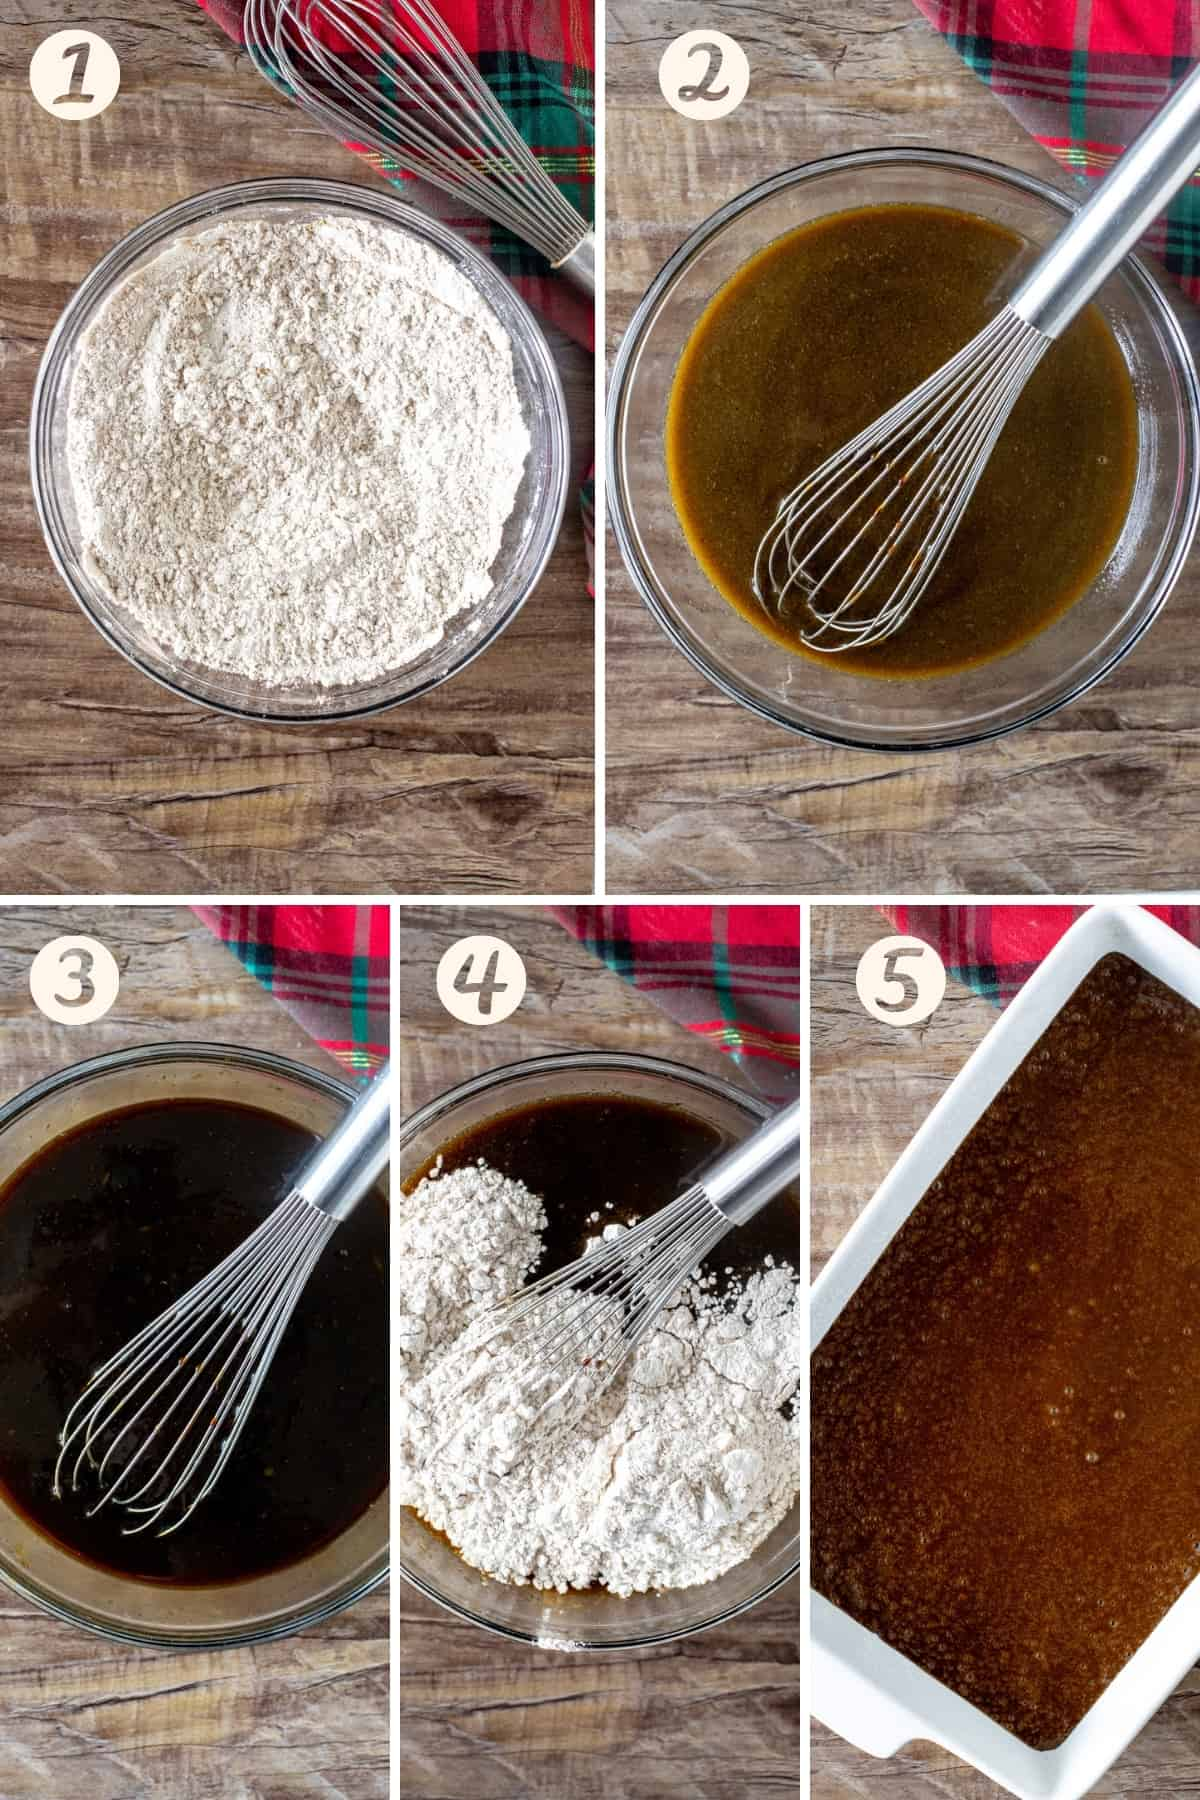 5 photo collage of step-by-step for making gingerbread